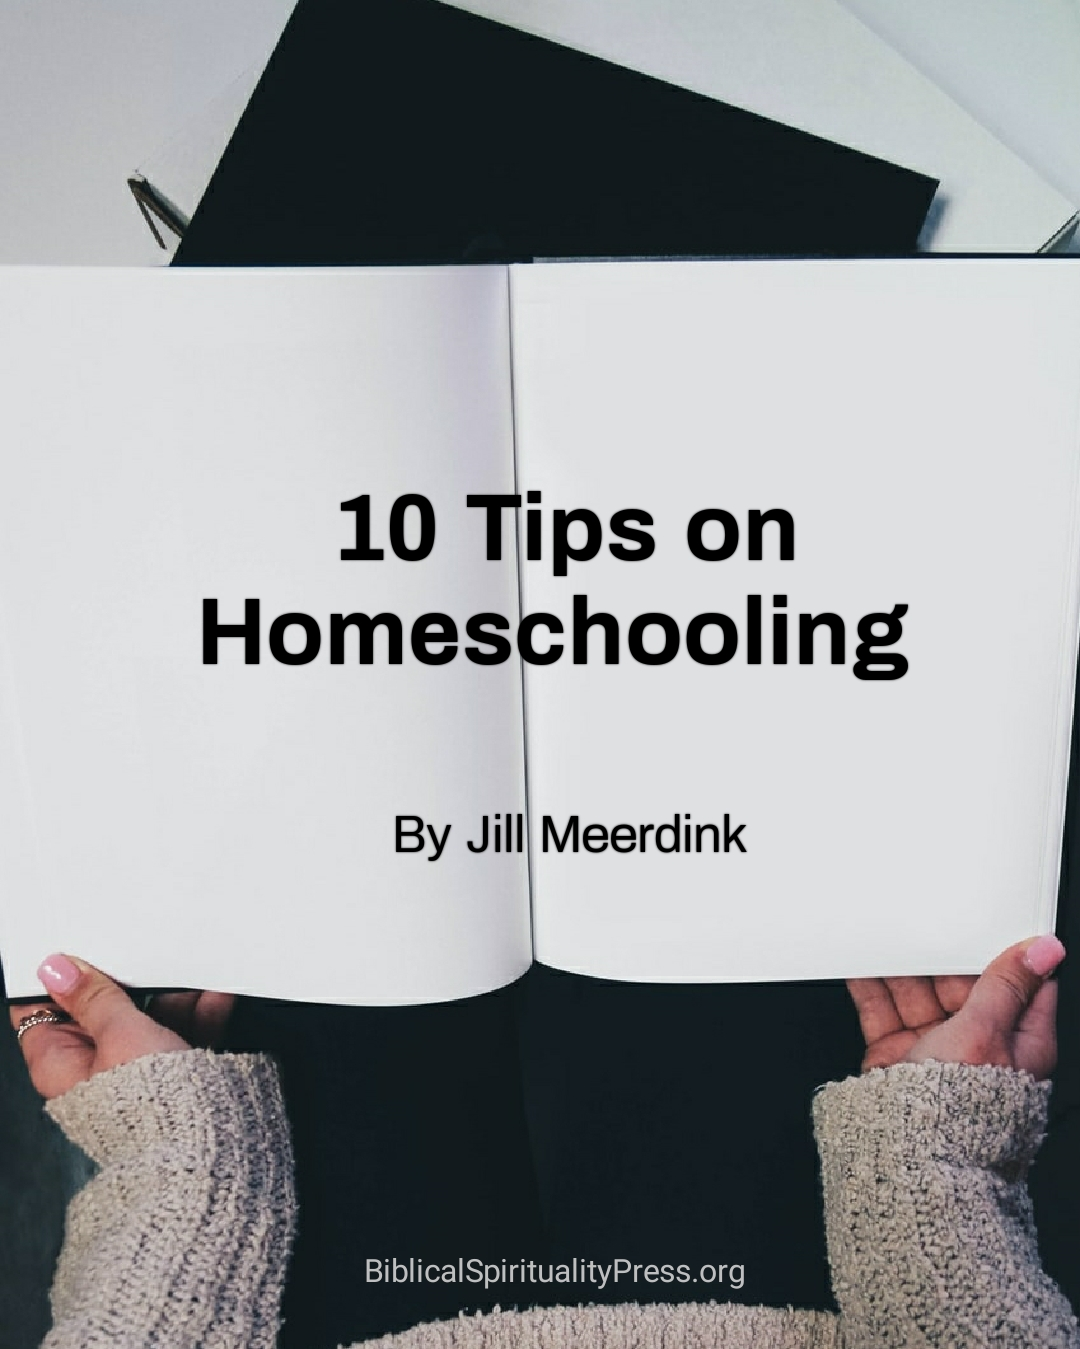 10 Tips on Homeschooling